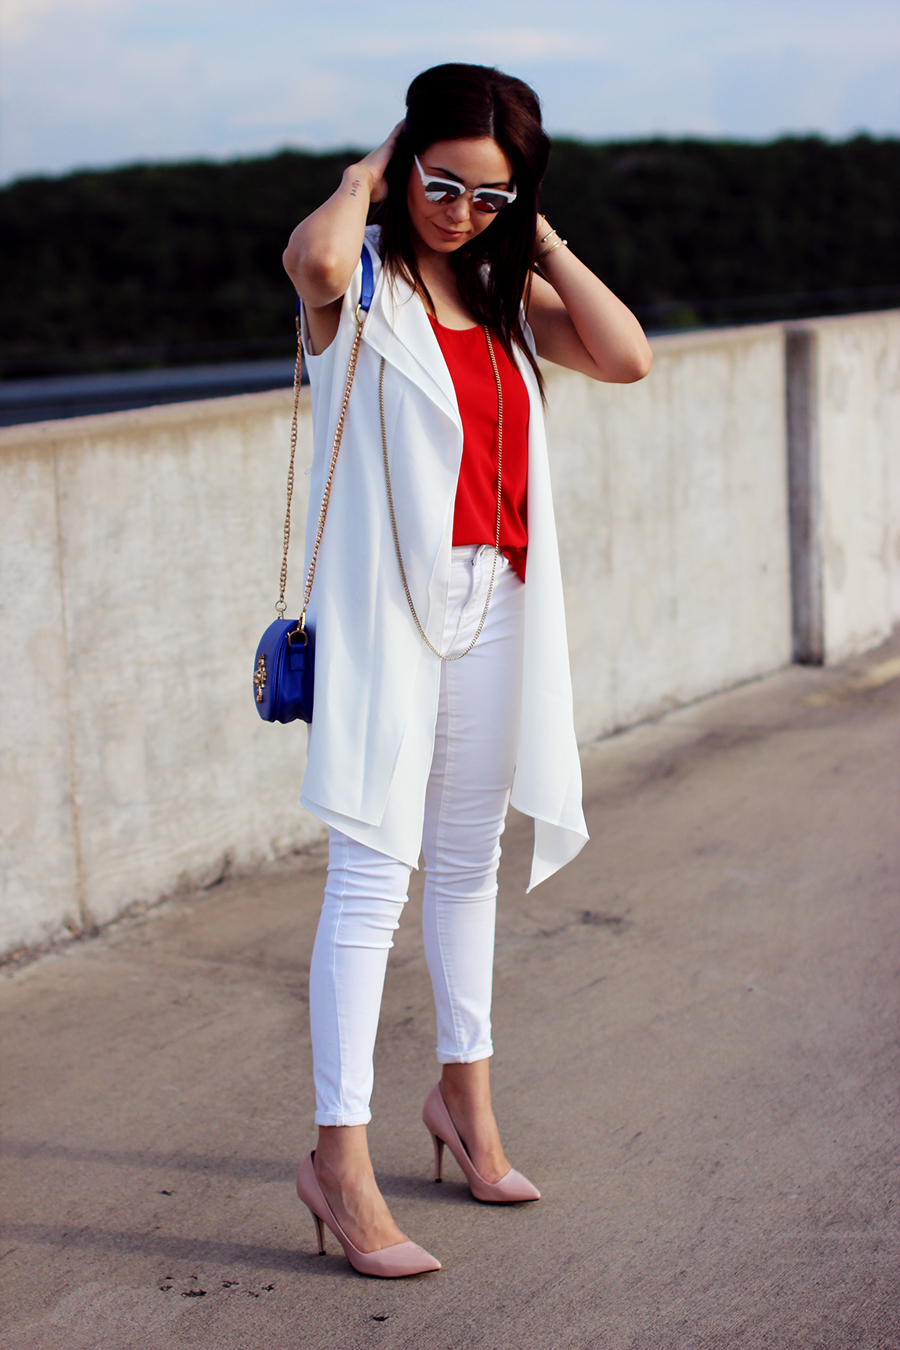 Fixin-to-thrill-july-4th-fourth-outfit-american-patriotic-austin-fashion-blog-texas-12